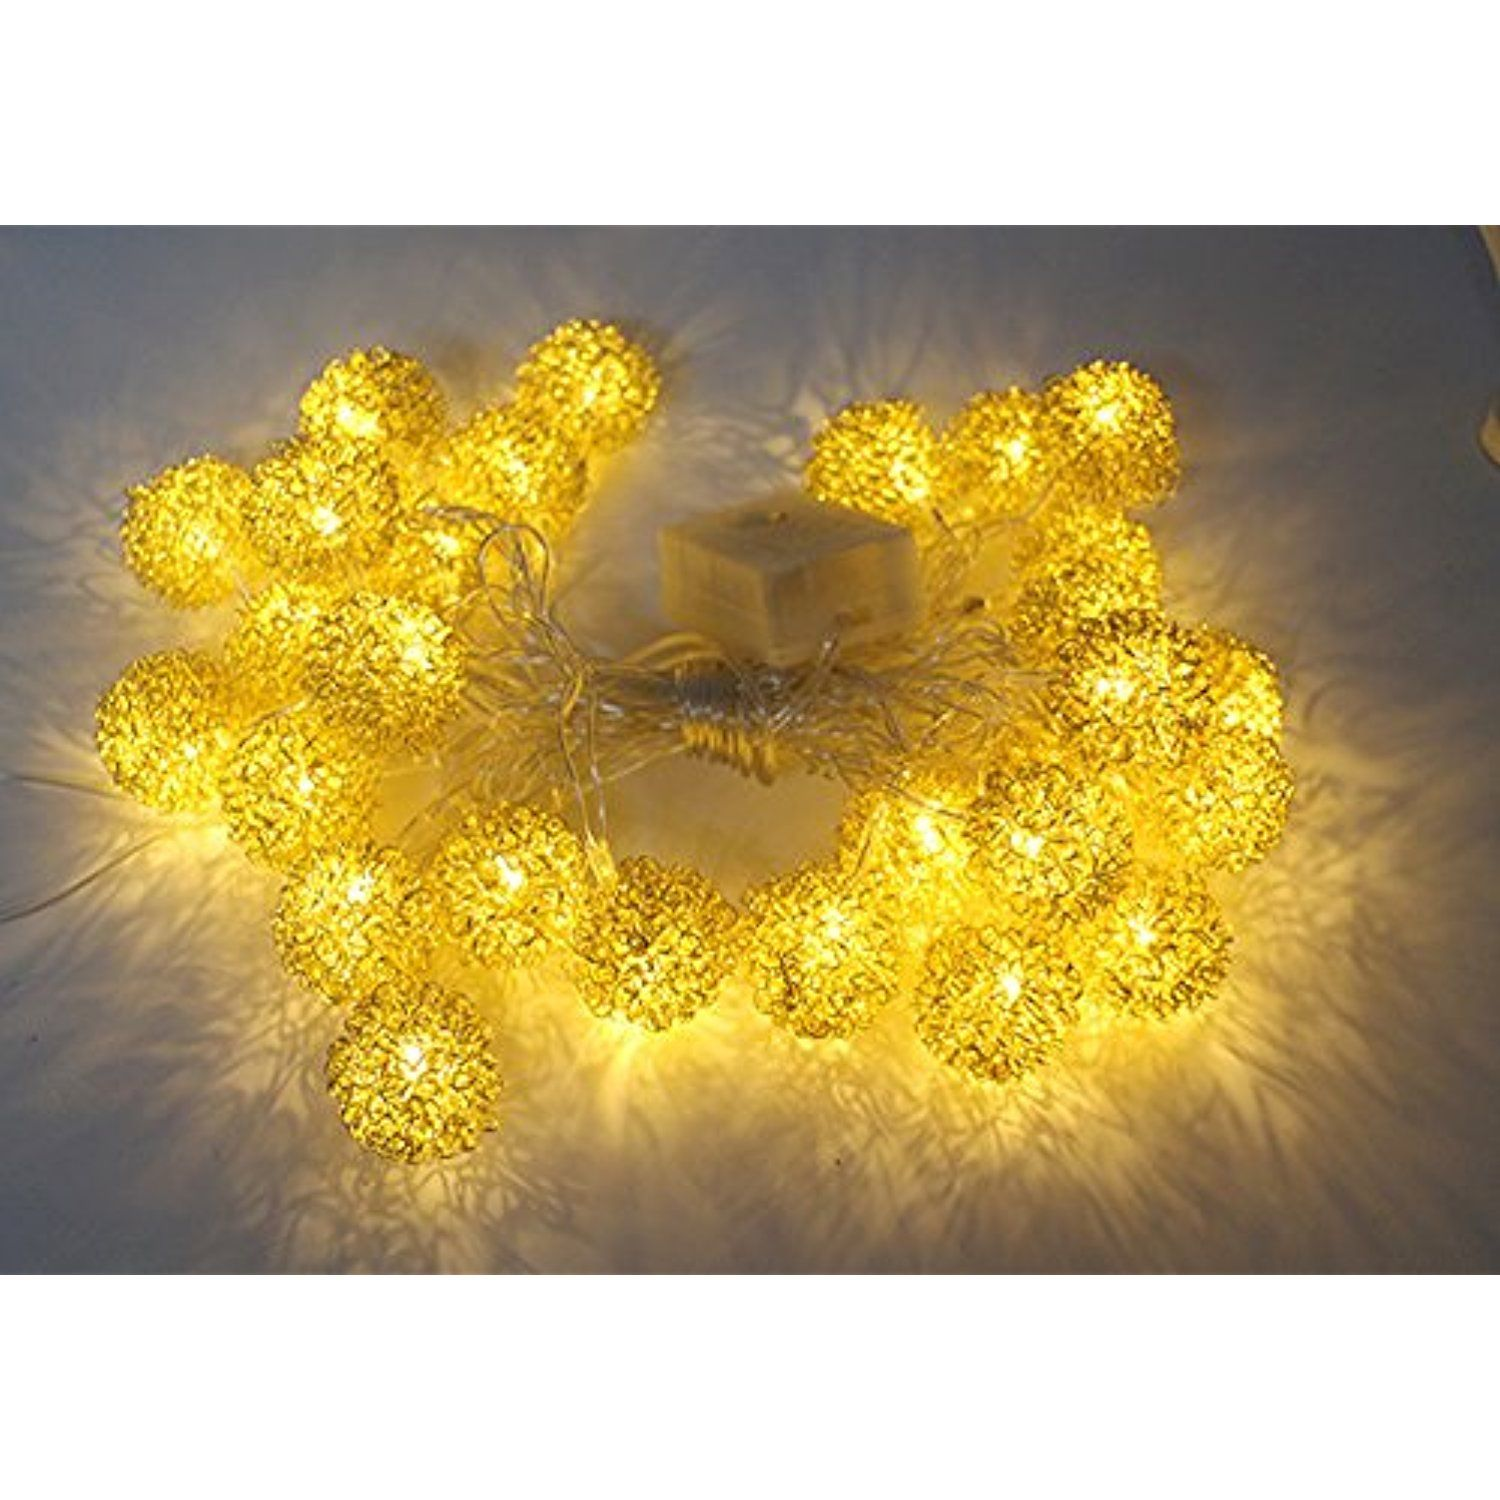 ikea lights revere target decor bedroom fairy size for wall decorative neon led full black online string pewter bedrooms in of